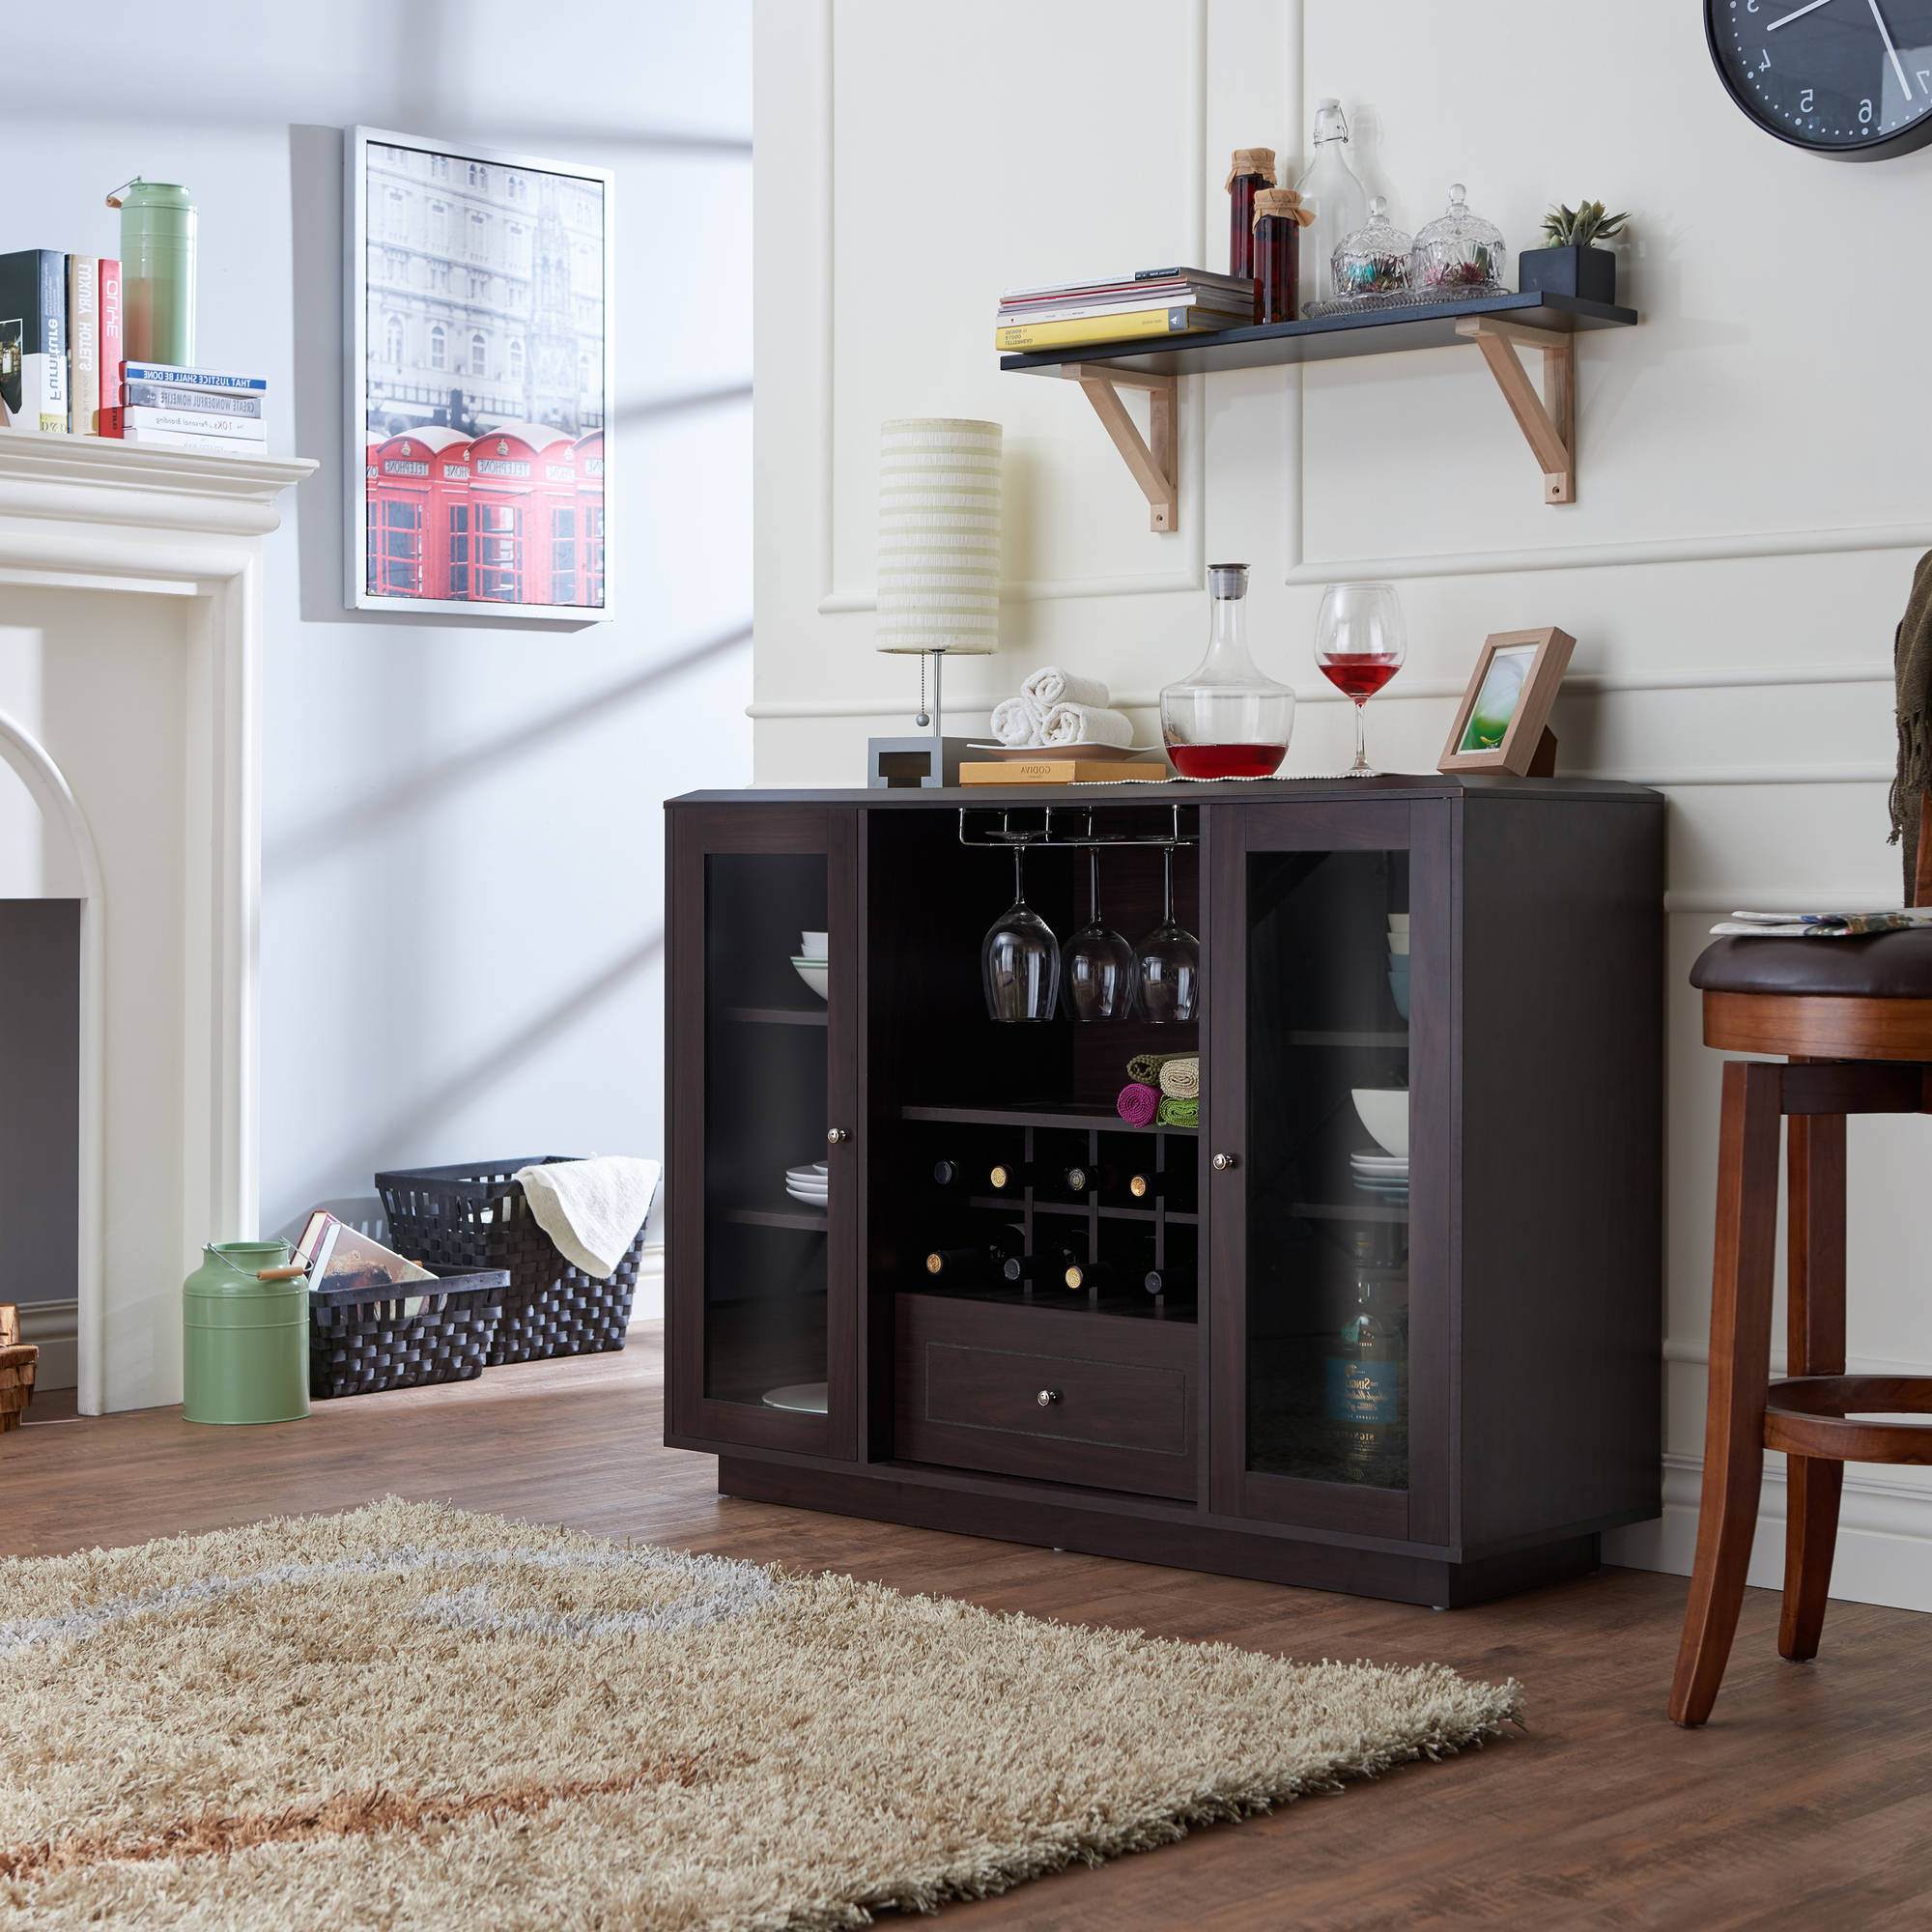 Furniture Of America Hegard Modern Multi Storage Dining Buffet, Espresso Within Contemporary Espresso 2 Cabinet Dining Buffets (View 8 of 20)